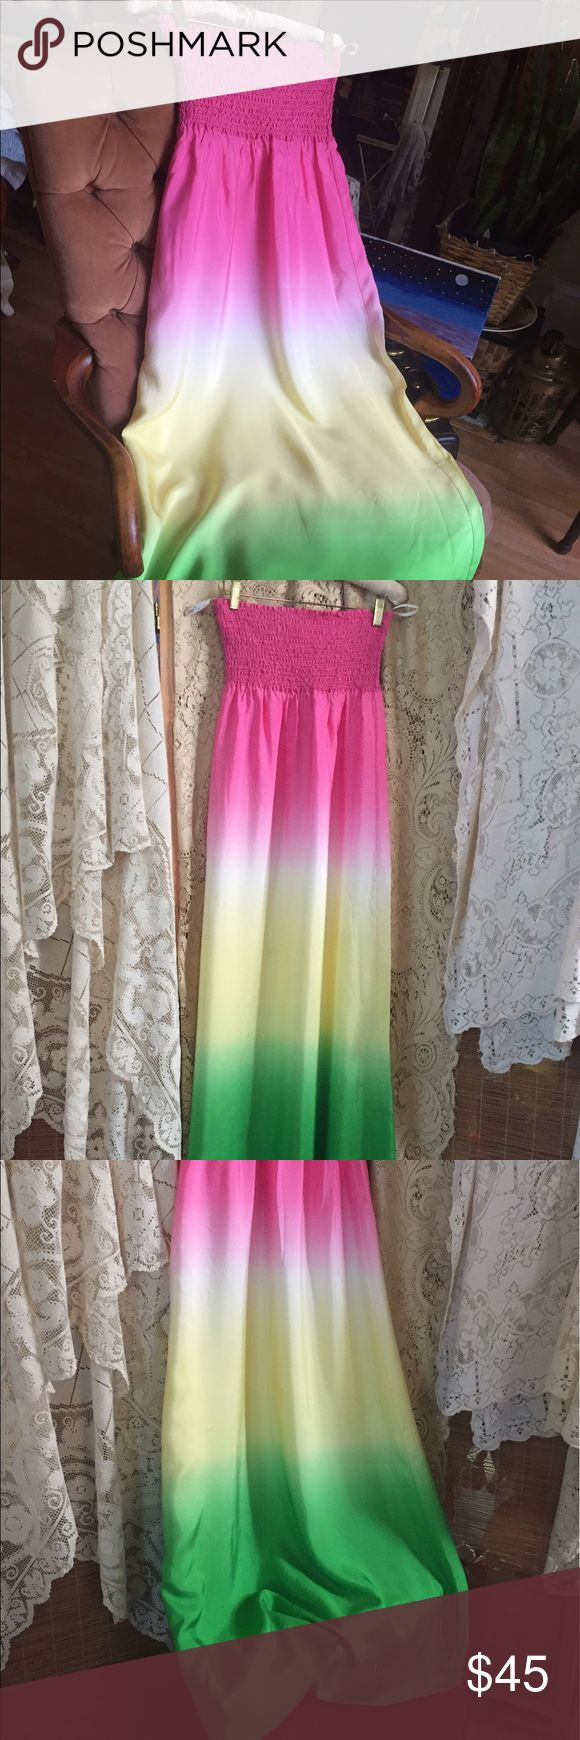 Lily Pulitzer Gradient Silk Rainbow Maxi Dress Lily Pulitzer silk maxi dress with a hotty pink stretch bandeau strapless top. Gradient classic Lilly pastels colors flow from pink to yellow into a vibrant green. This dress is fully lined from waist to hem. Never worn with tags. In near perfect, closet stored condition. Size Small Lilly Pulitzer Dresses Maxi